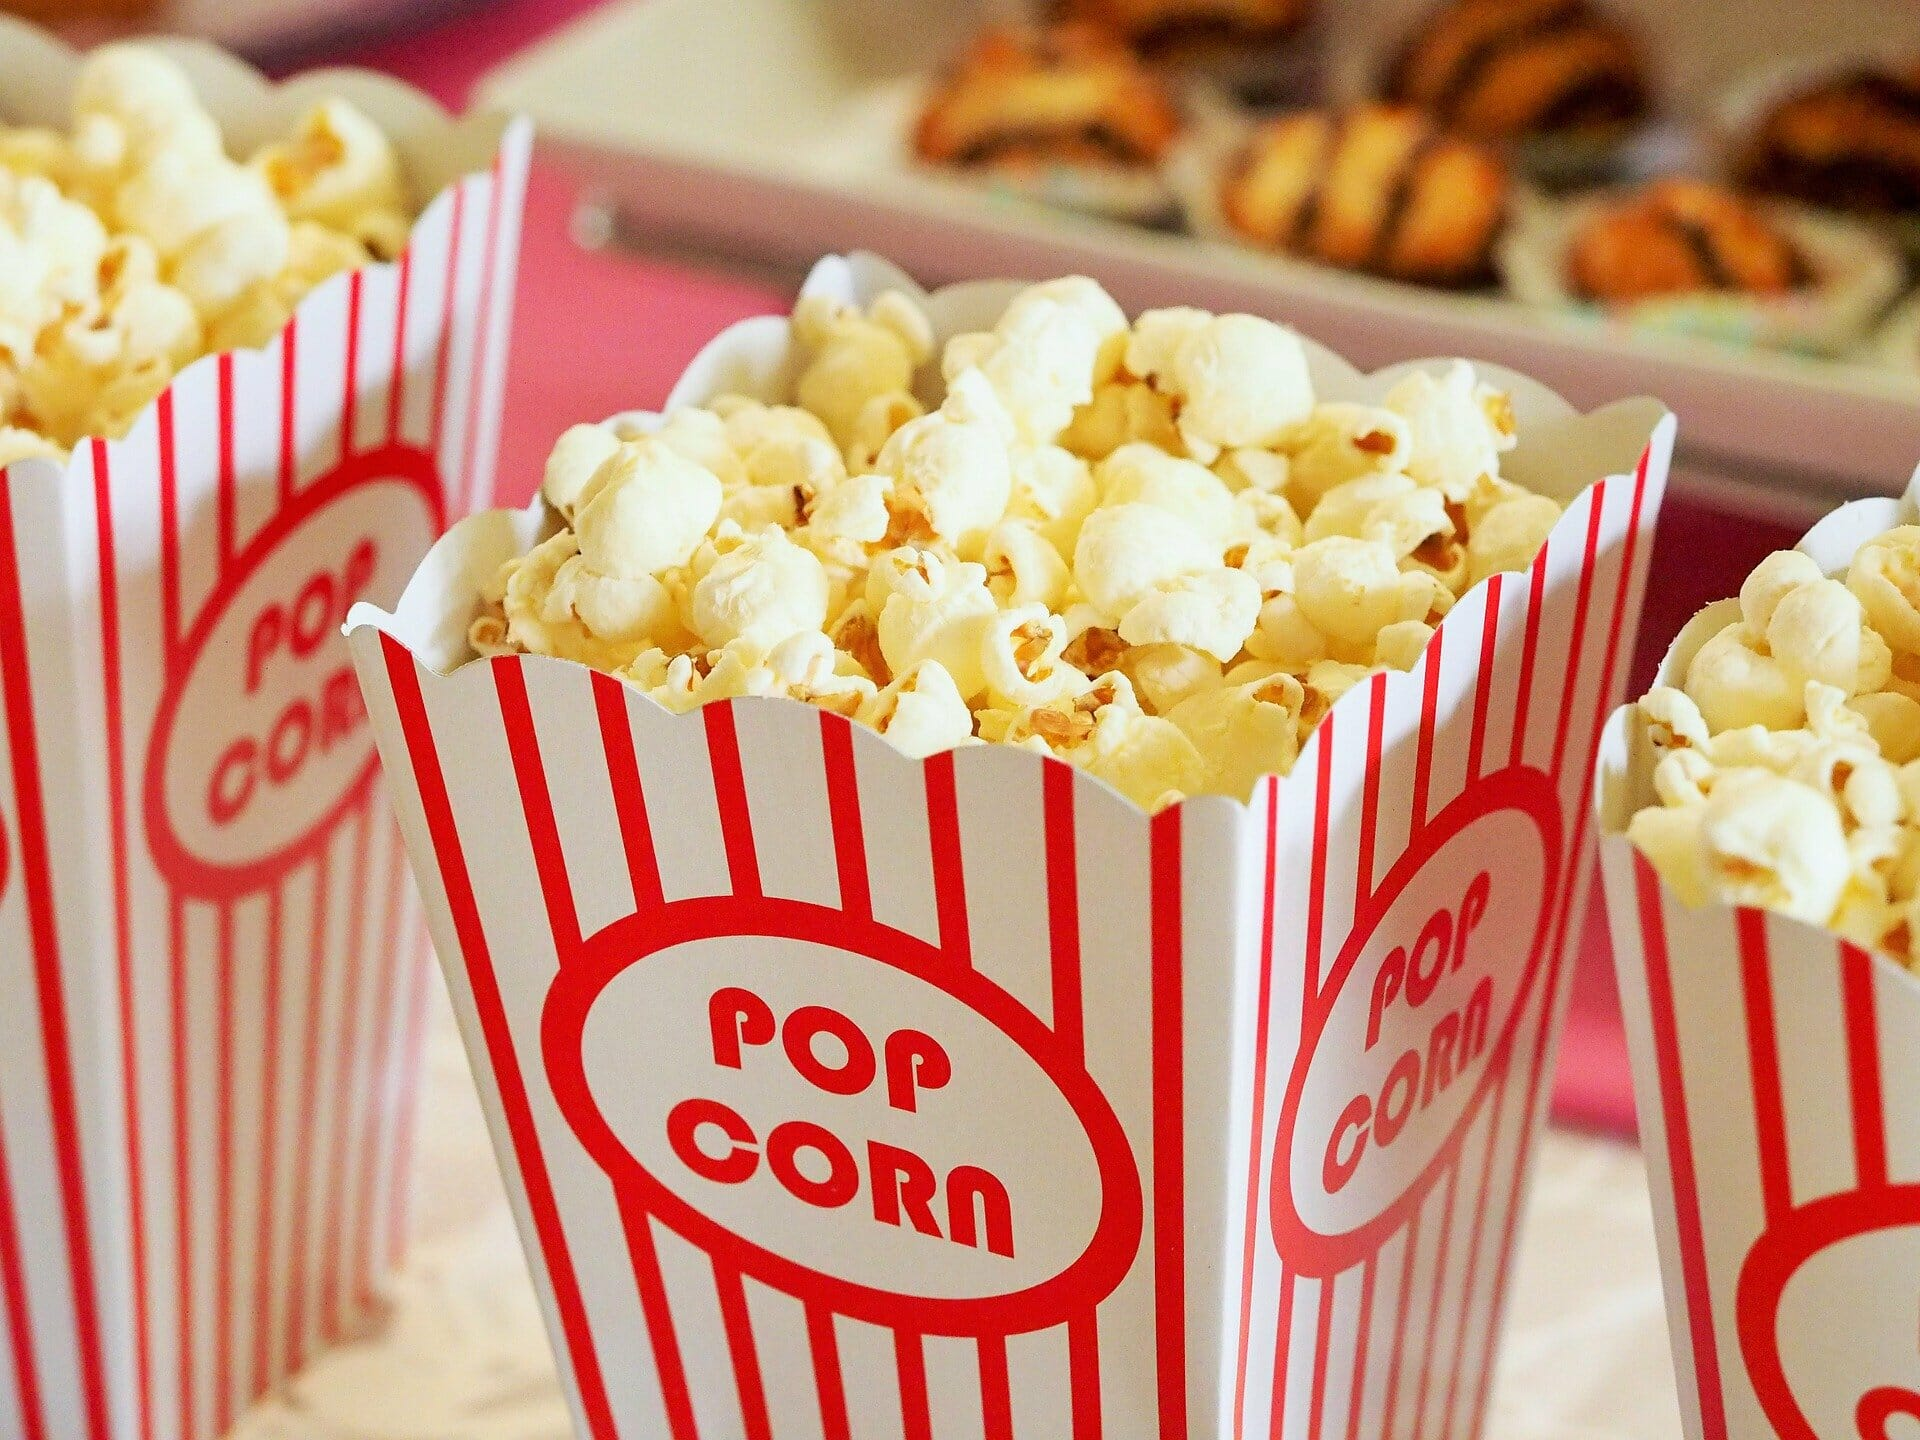 popcorn tubs to take to the cinema